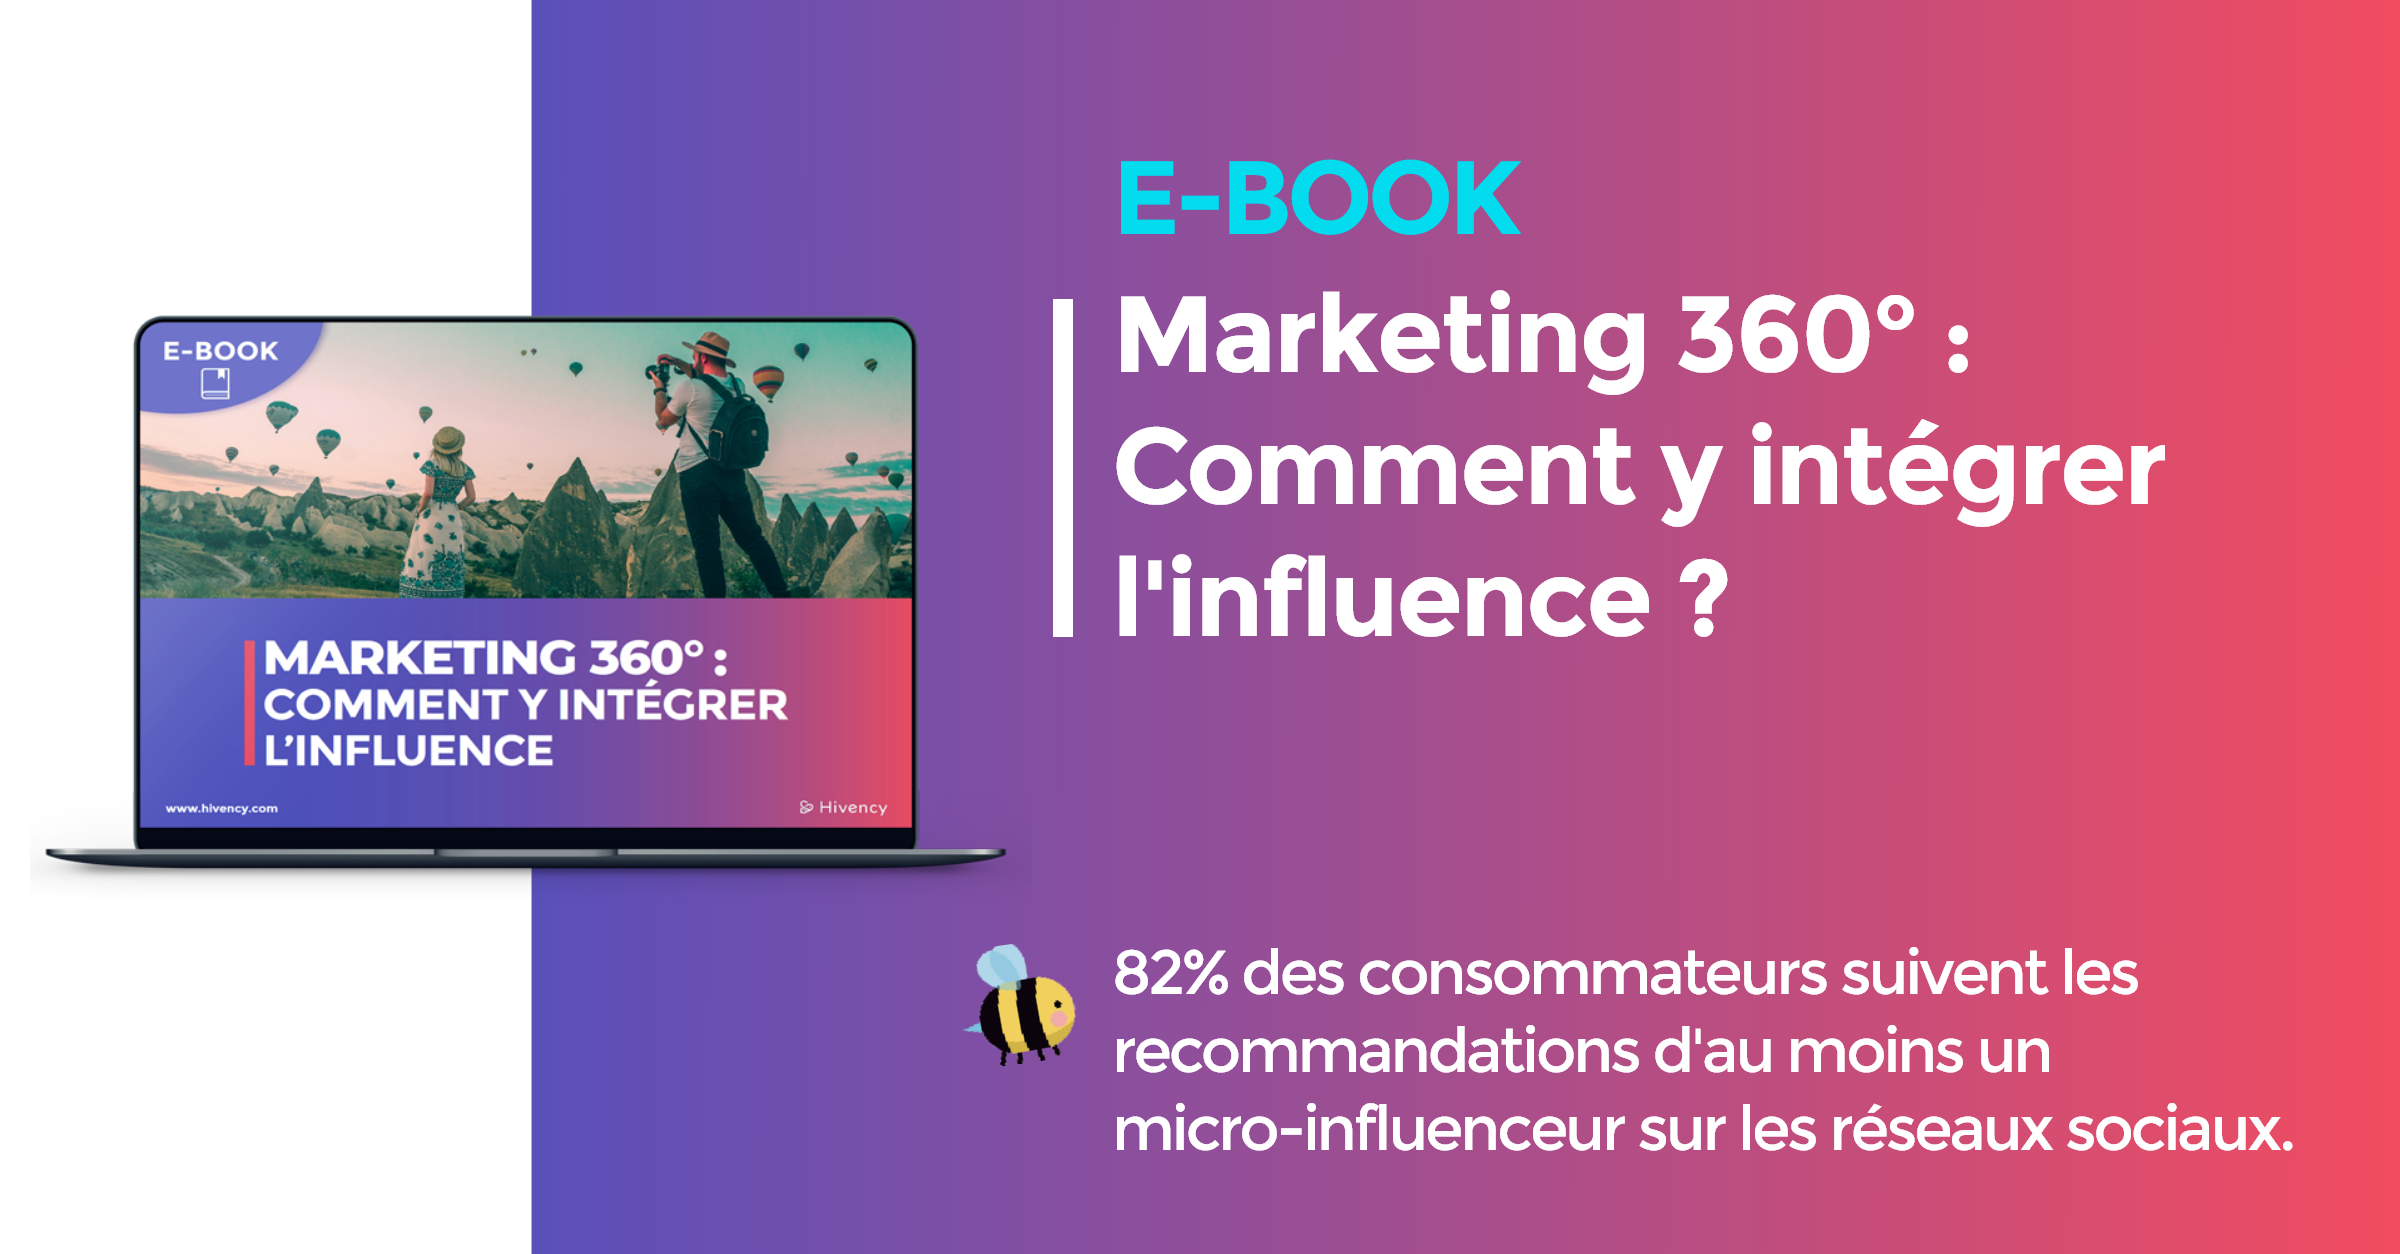 ebook marketing 360 influence